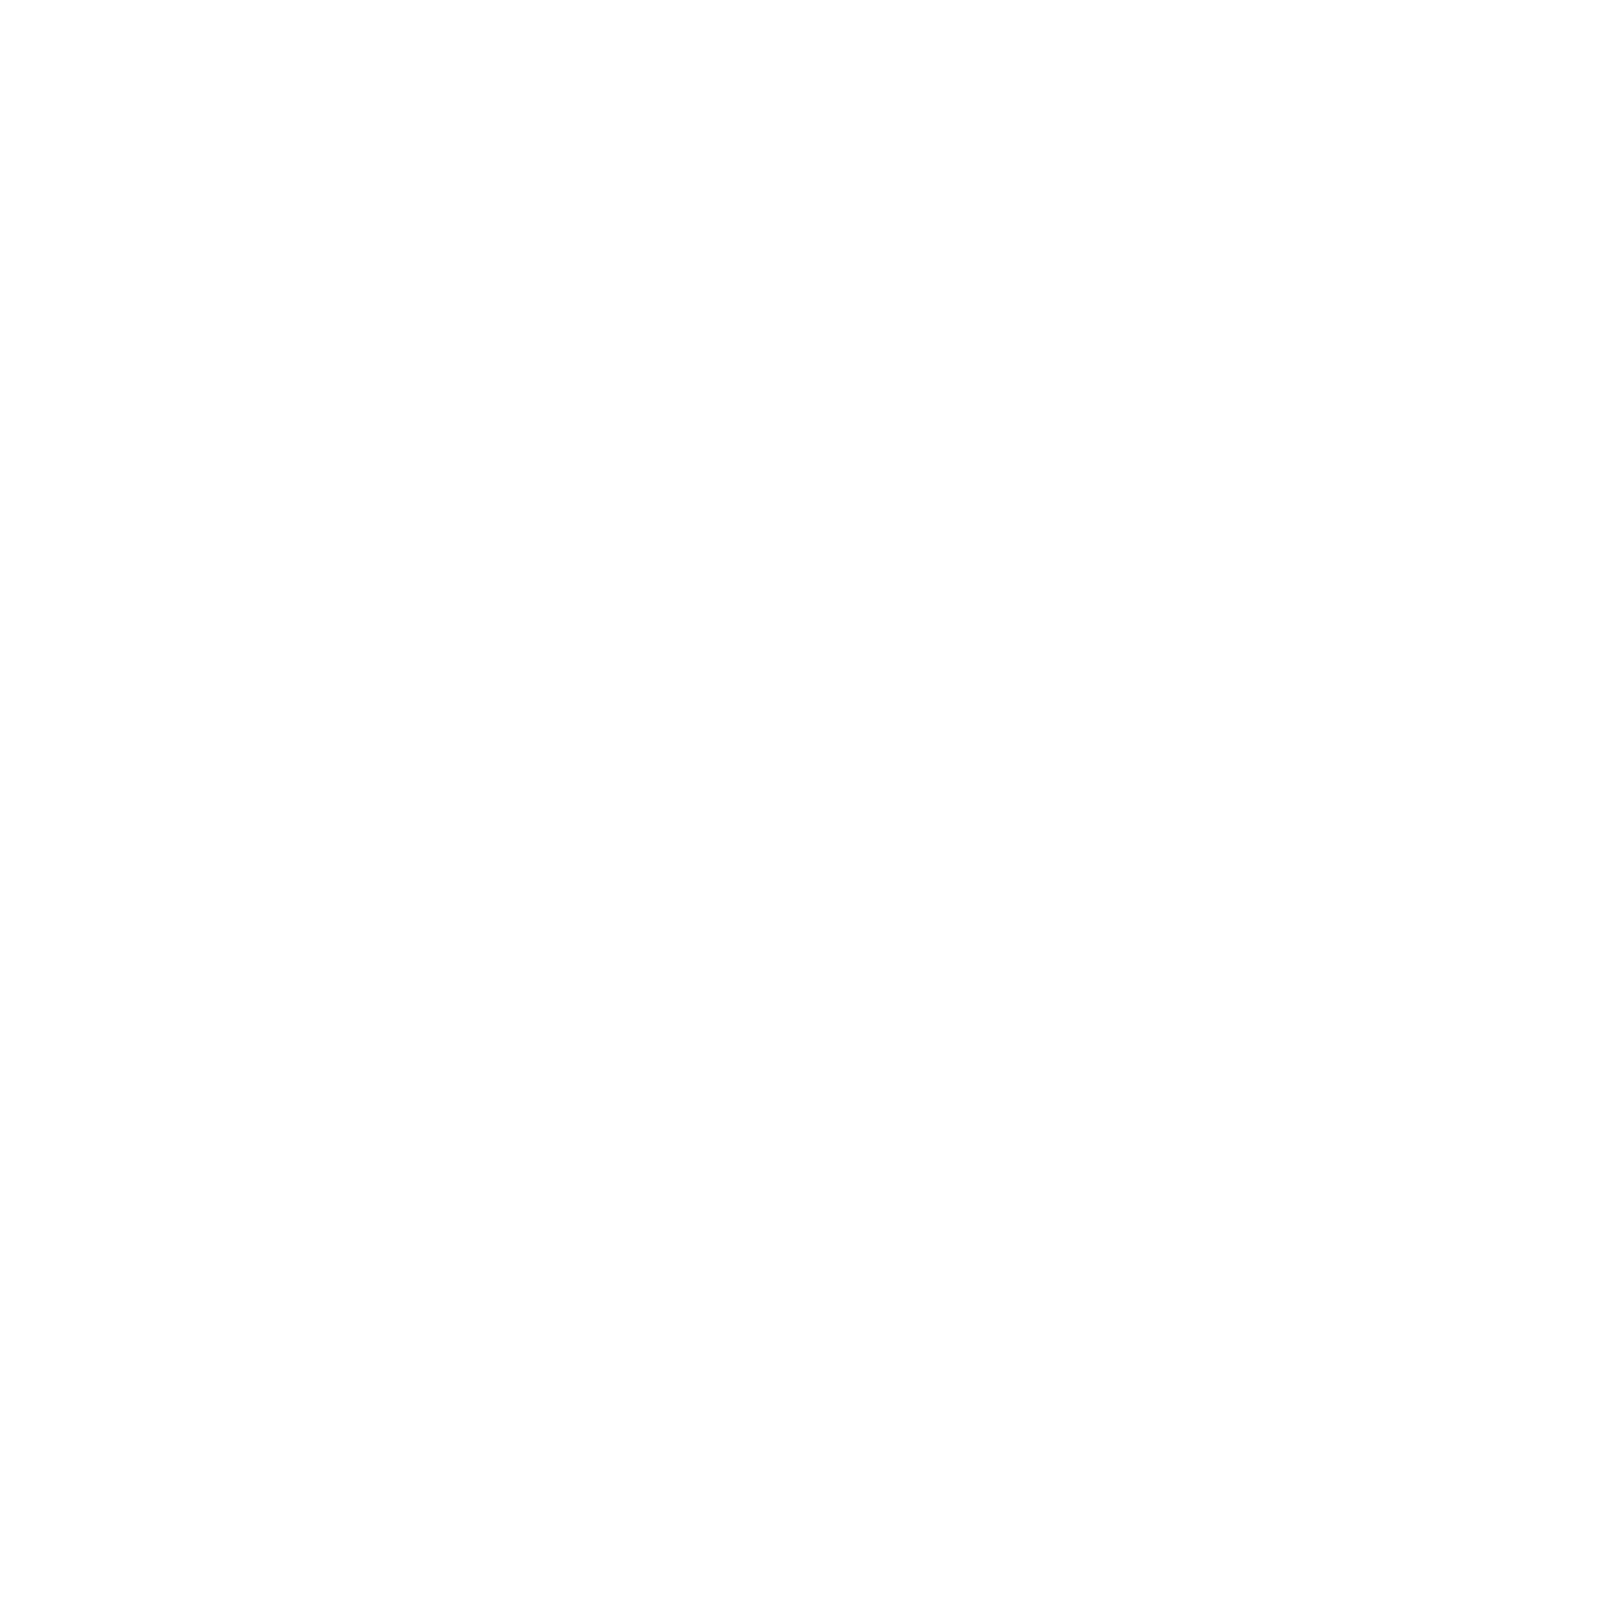 balfour-beatty-project-logo